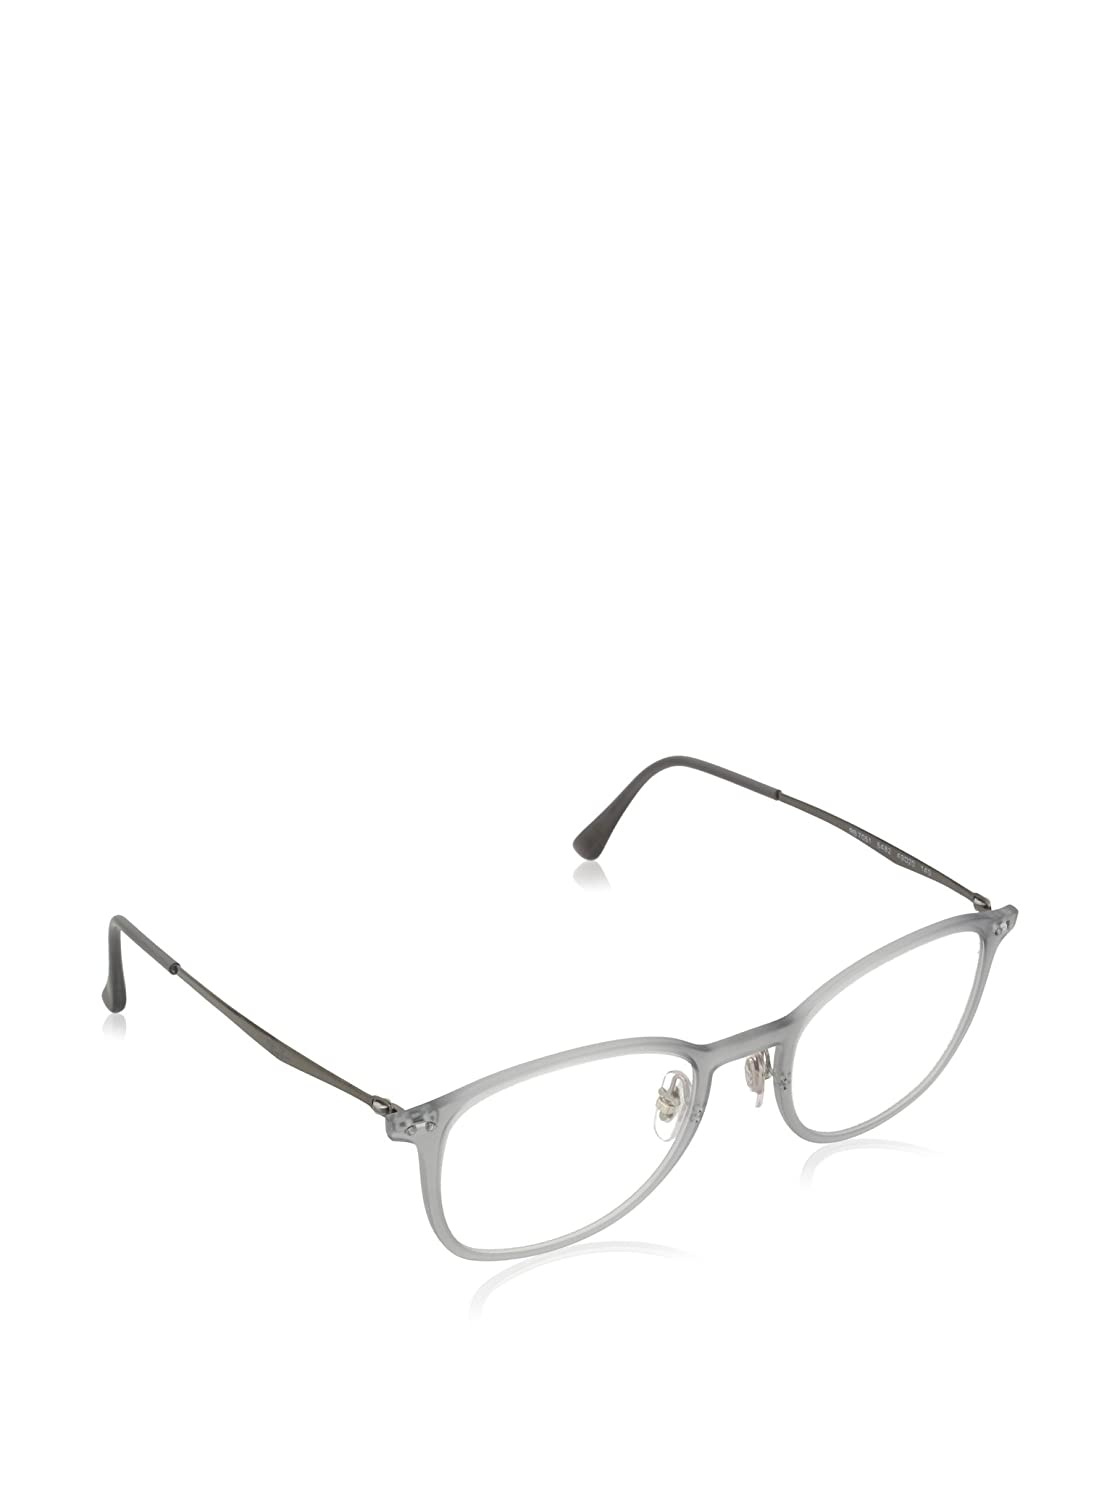 New Ray-Ban Optical 0RX7051 Sunglasses for Unisex